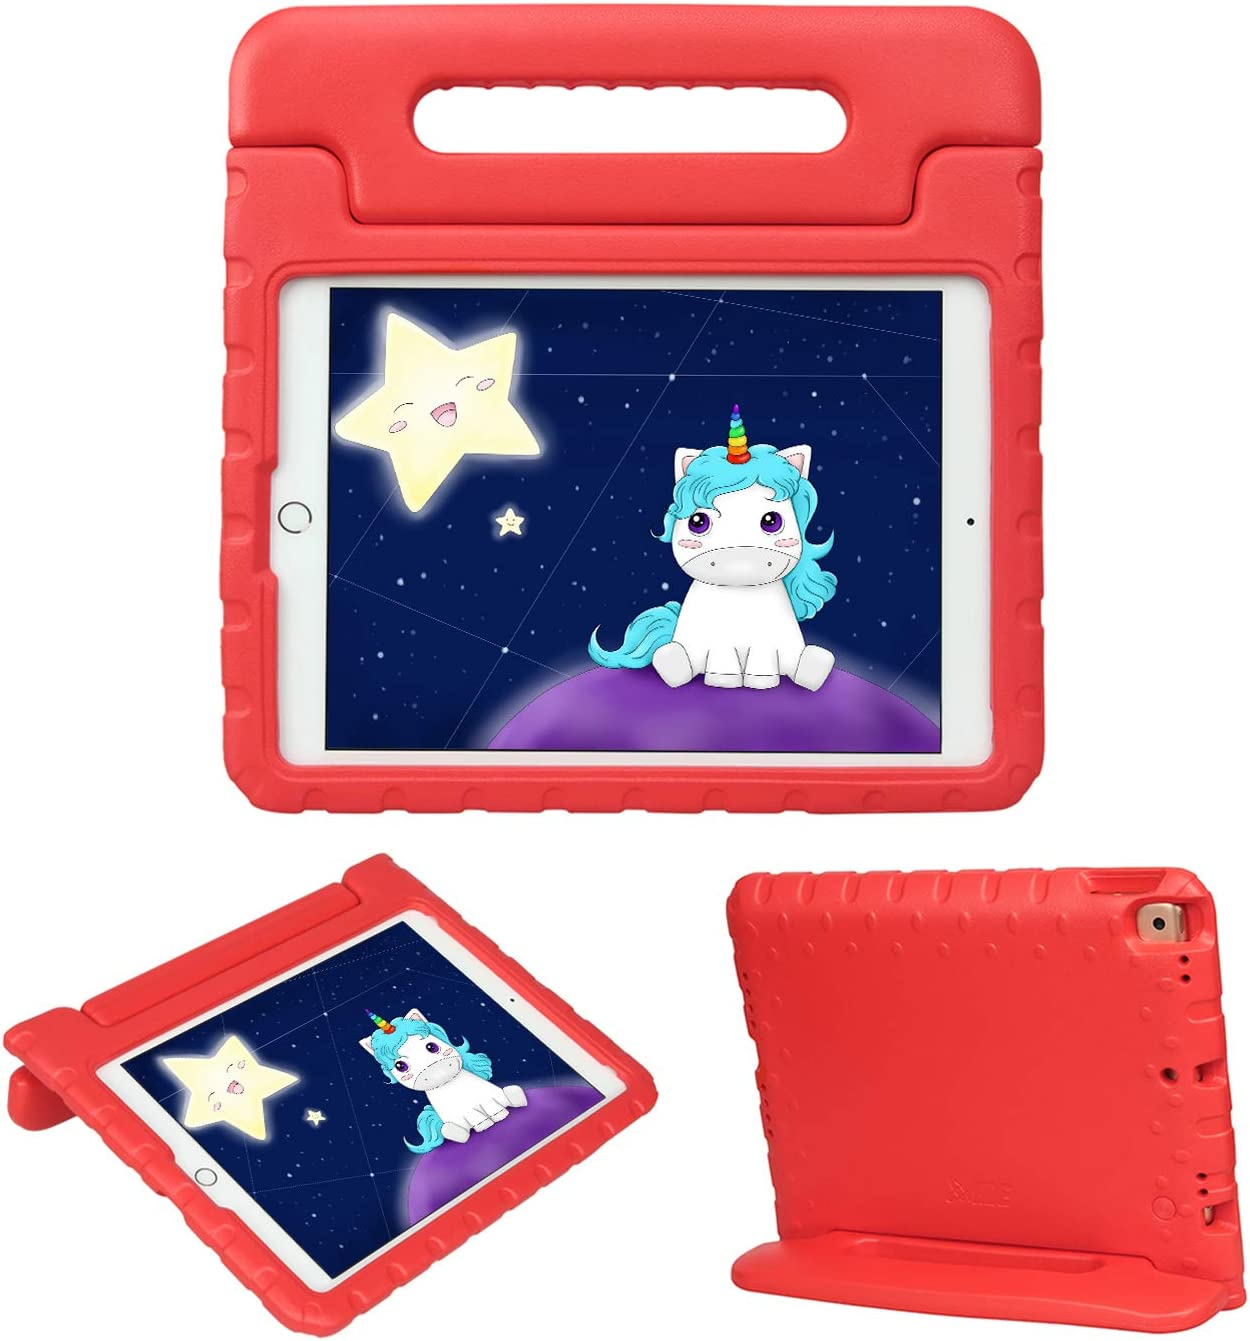 HDE iPad 8th Generation Case for Kids – Shock Proof iPad Cover 7th Generation 10.2 - iPad 10.2 Kids Case with Handle Stand for 7th/8th Generation Apple iPad - Red